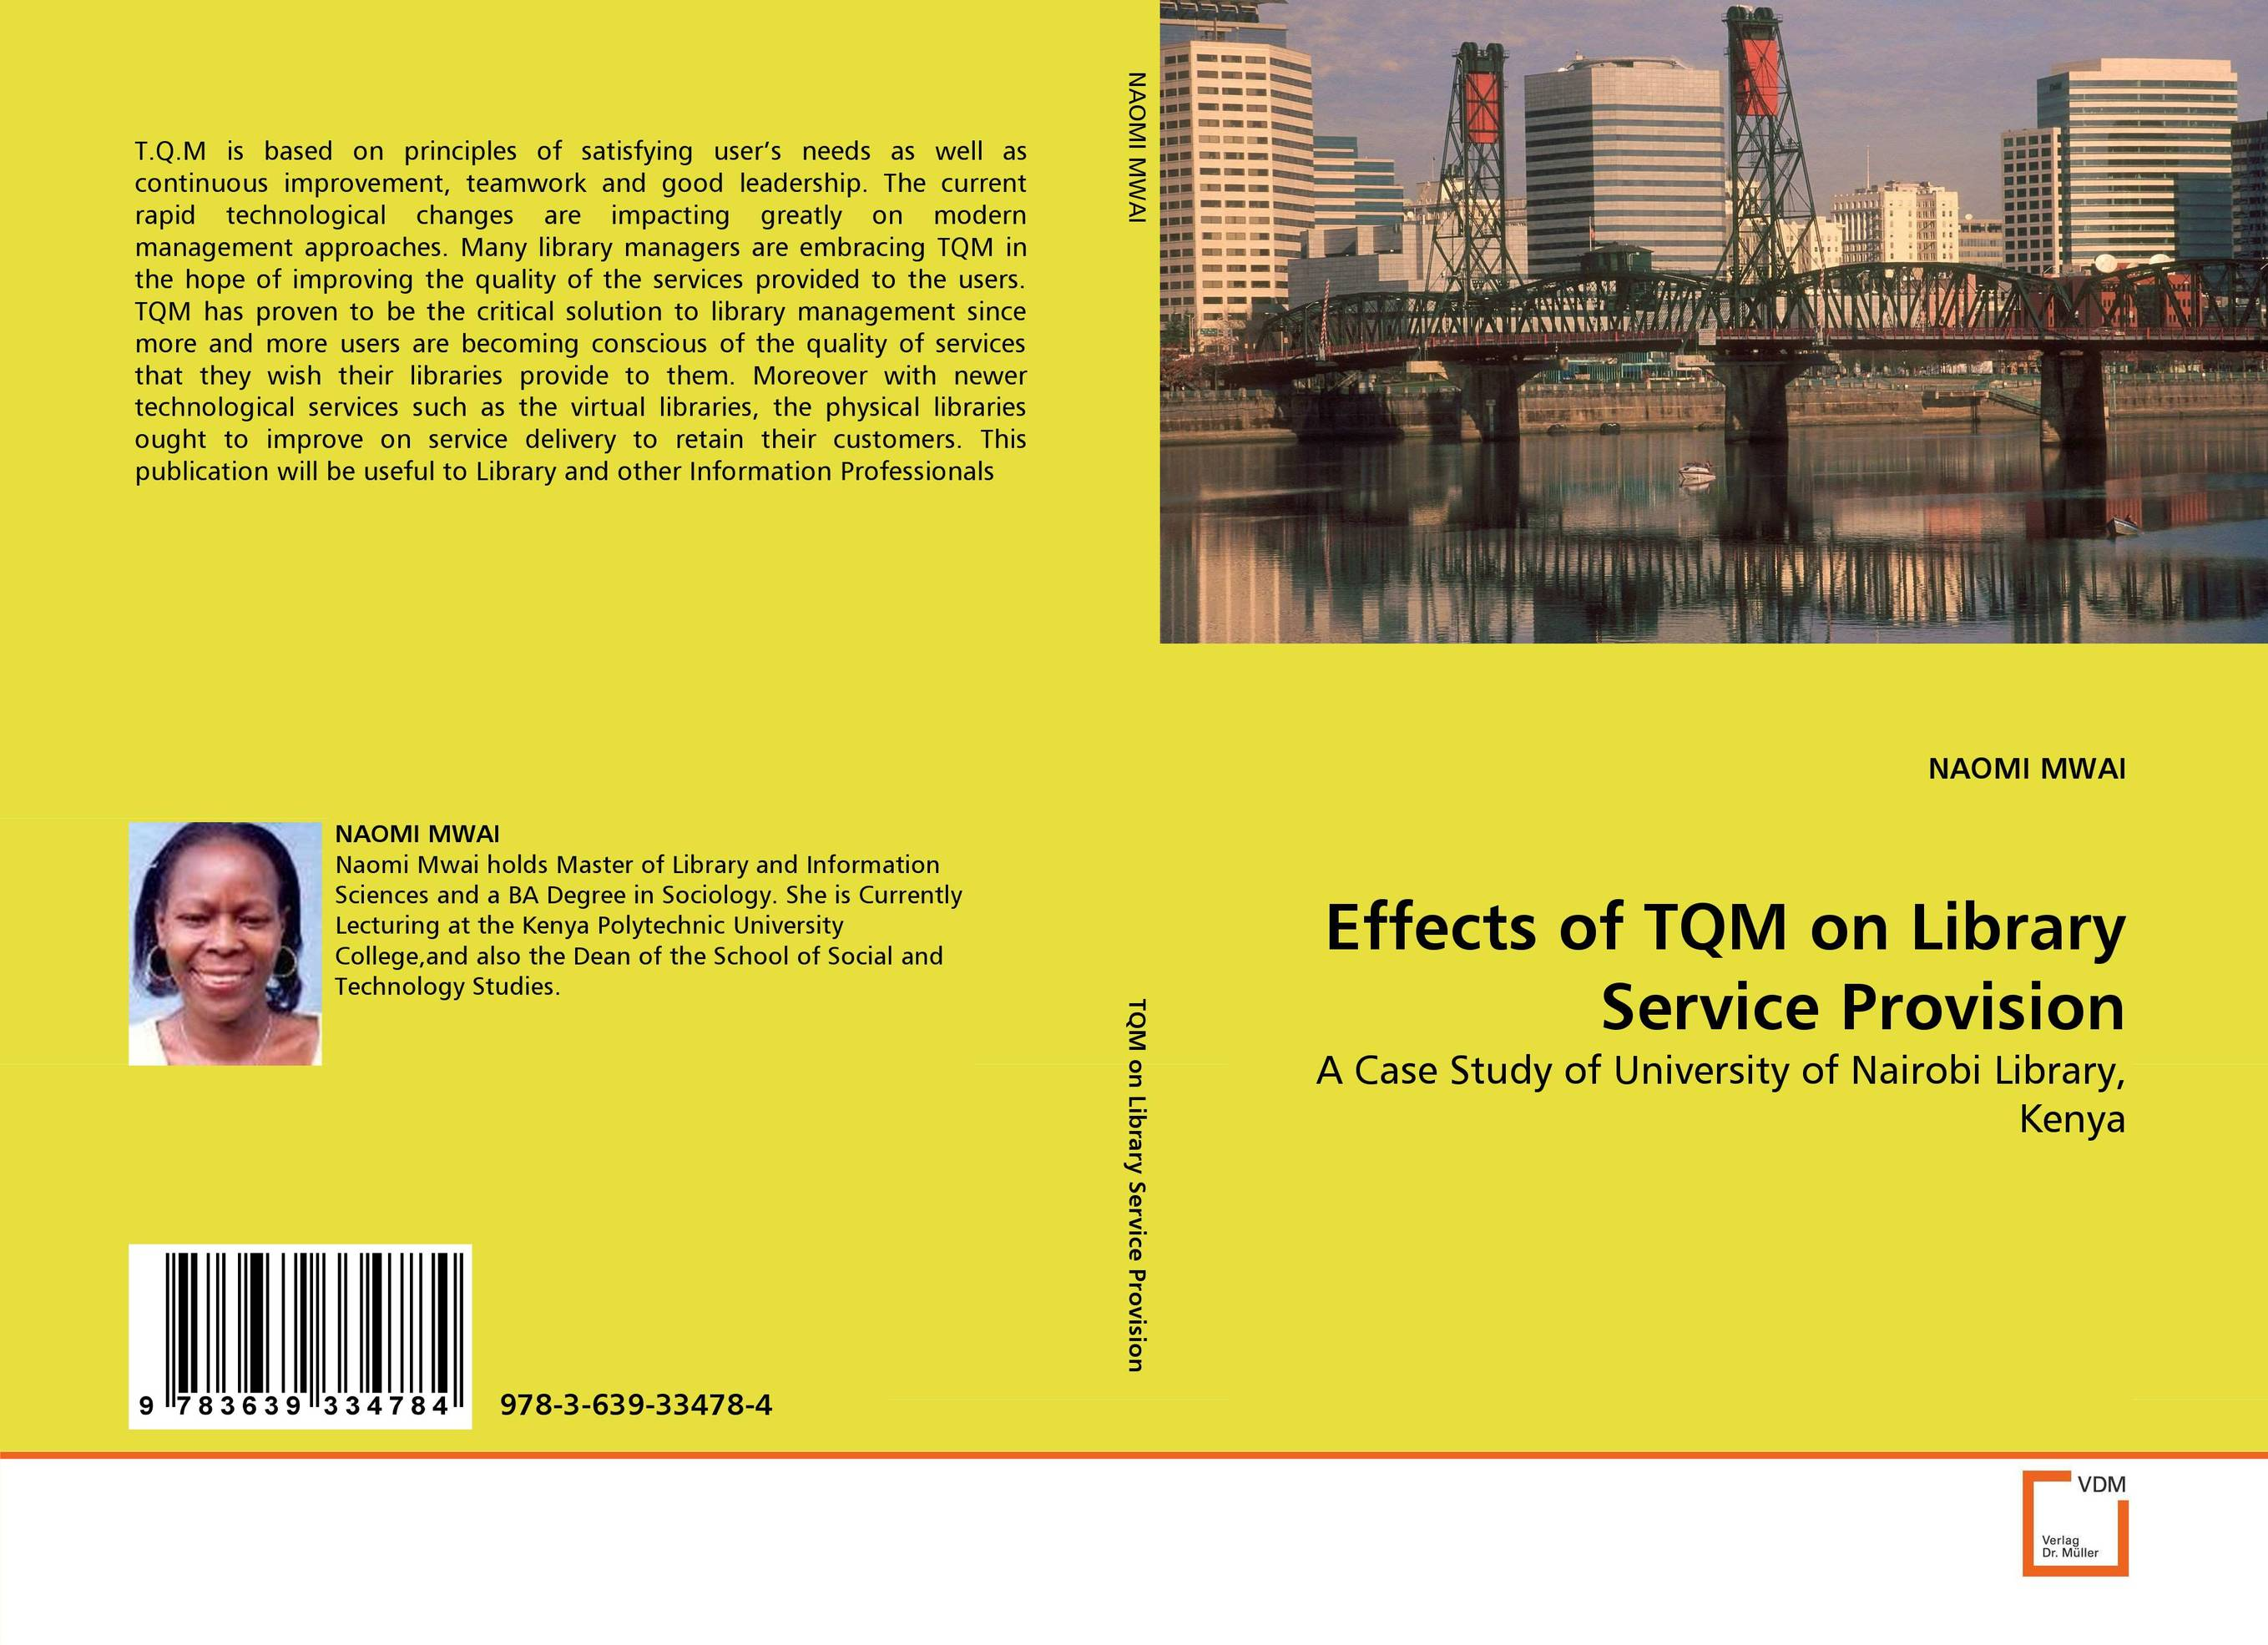 Effects of TQM on Library Service Provision